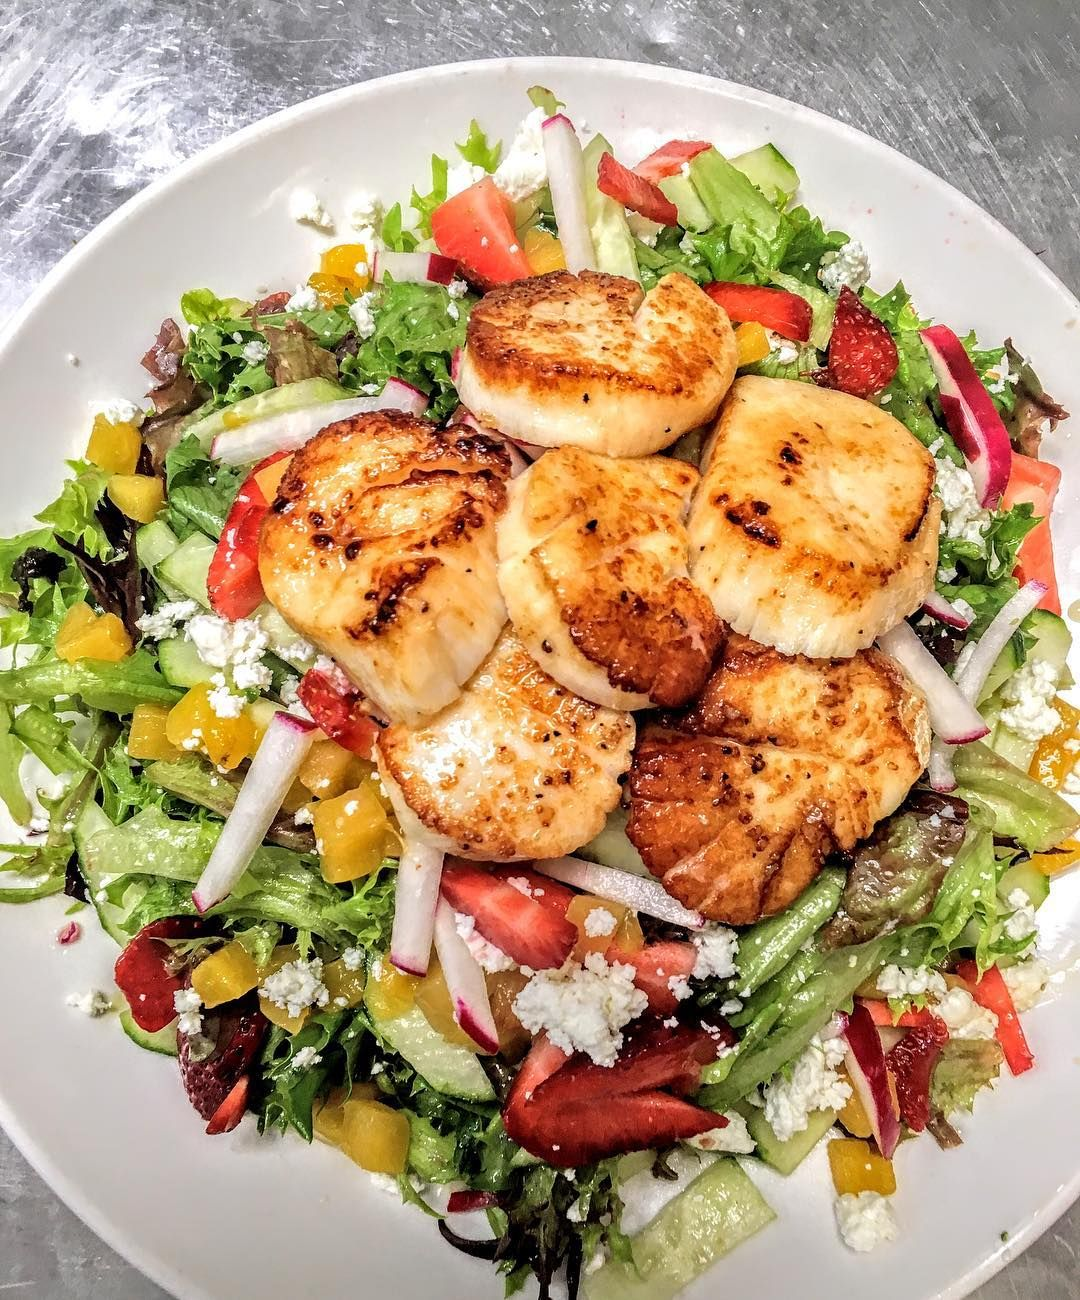 Summer Salad🥗  Mixed Crispy Greens fresh strawberries🍓 ,peaches🍑 , cucumber🥒 ,radish ,  goat cheese crumbles tossed in a lemon basil vinaigrette topped with pan seared StoningtonCT Sea Scallops